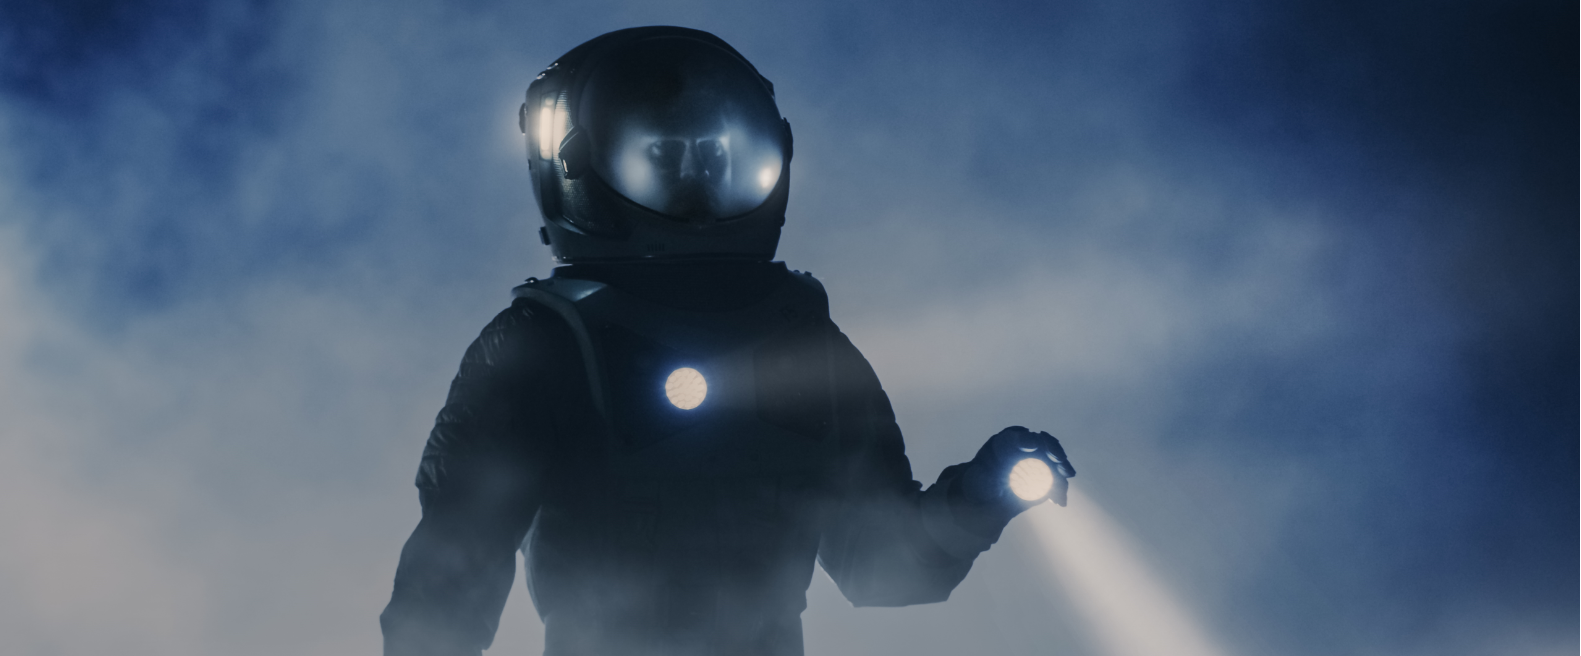 person in dark space suit searching through the fog with bright lights